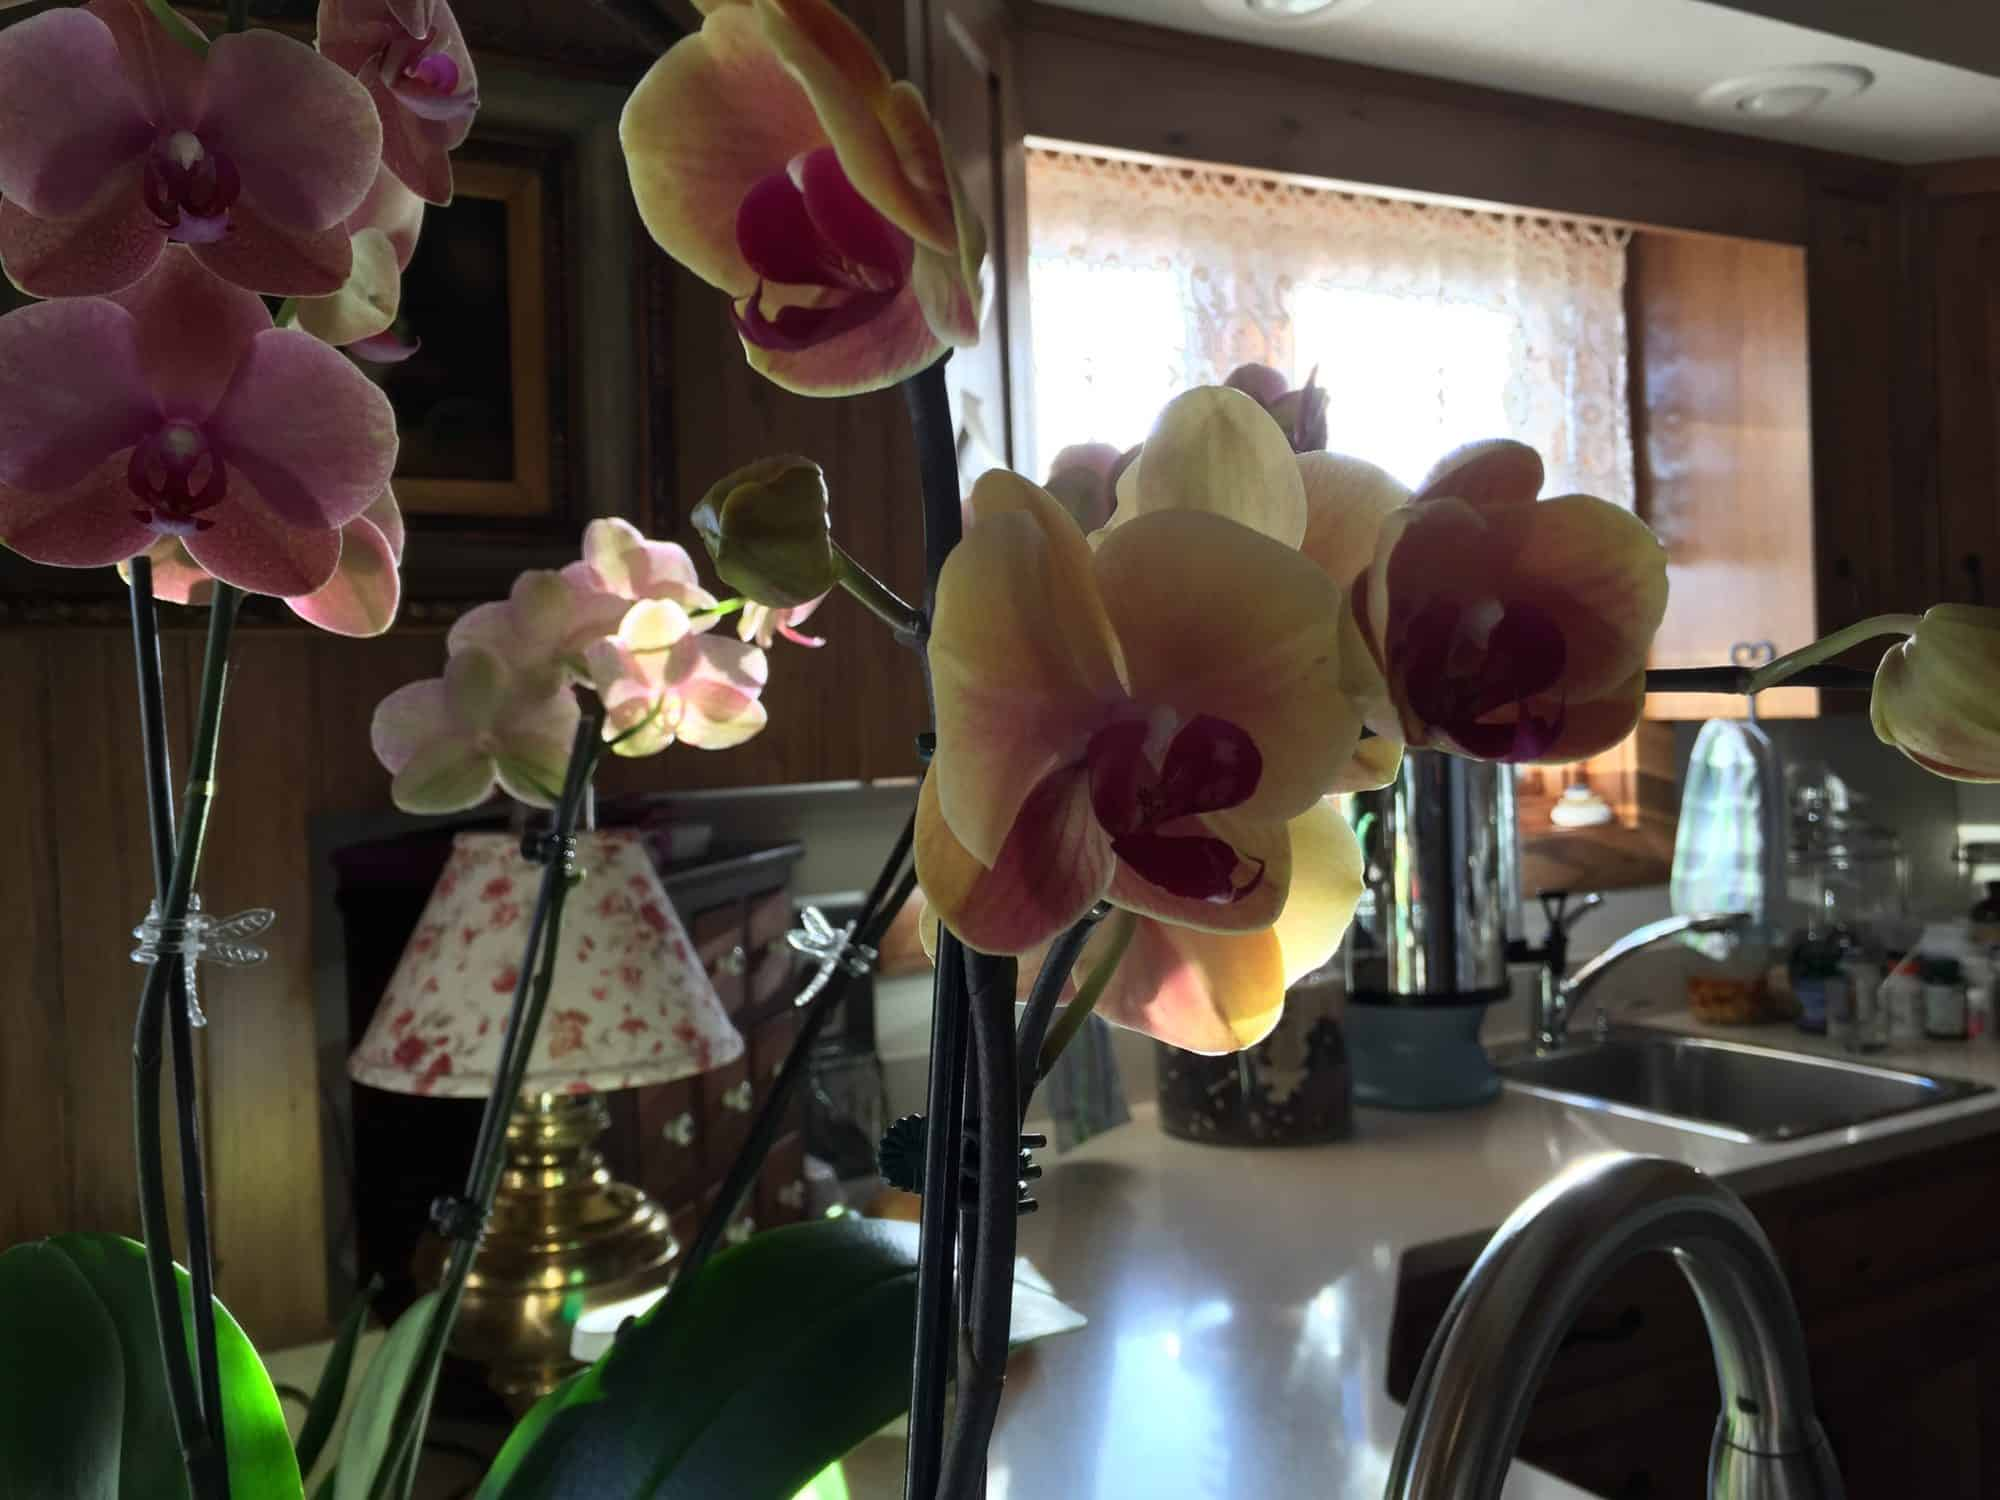 Using Color In Winter, To Cheer The Home & Heart. Orchids